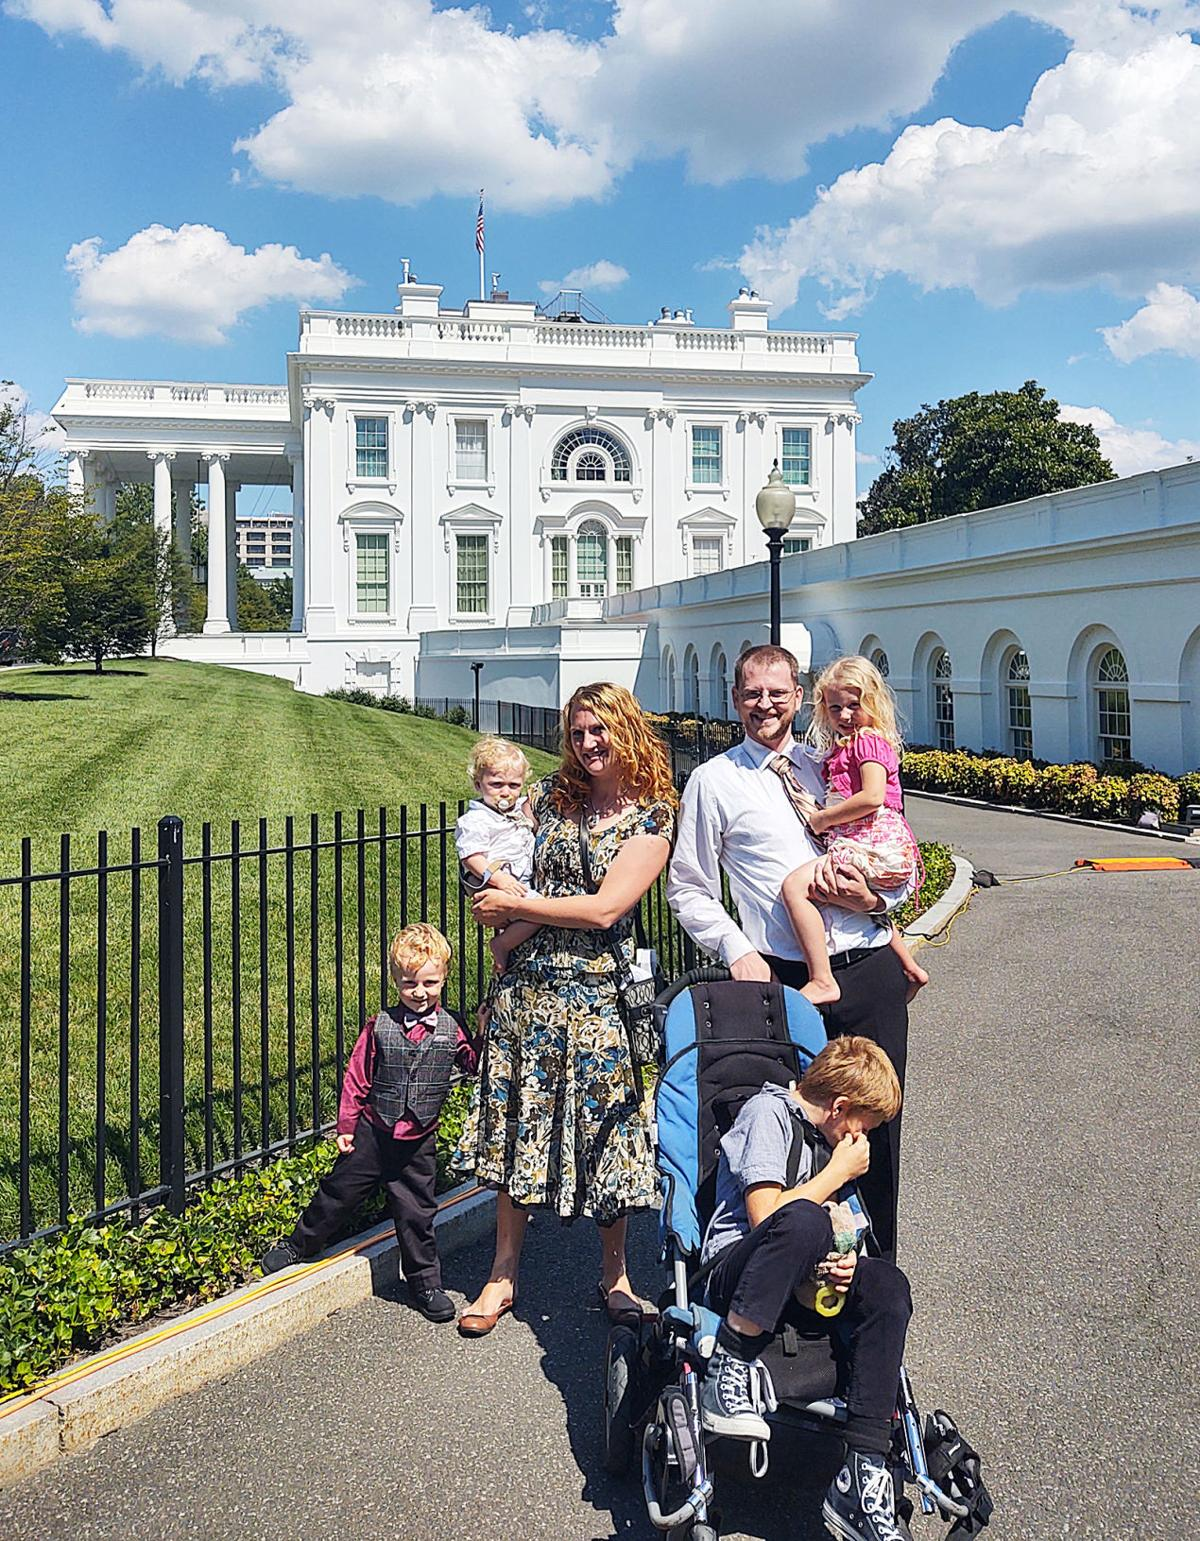 The search for her son: How Sara Bohon ended up at a table with the President